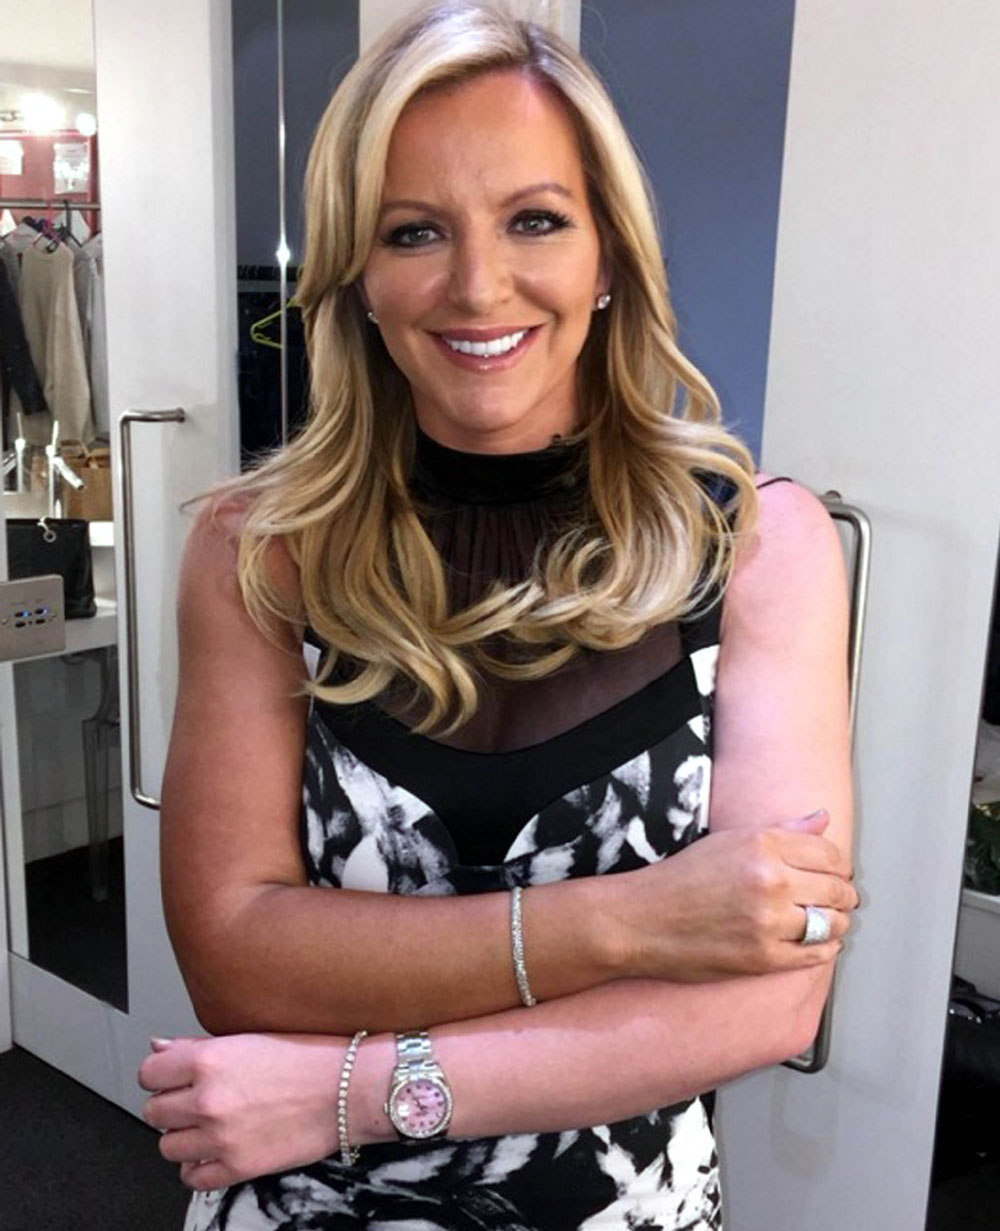 She tanned one arm to prove how the product works